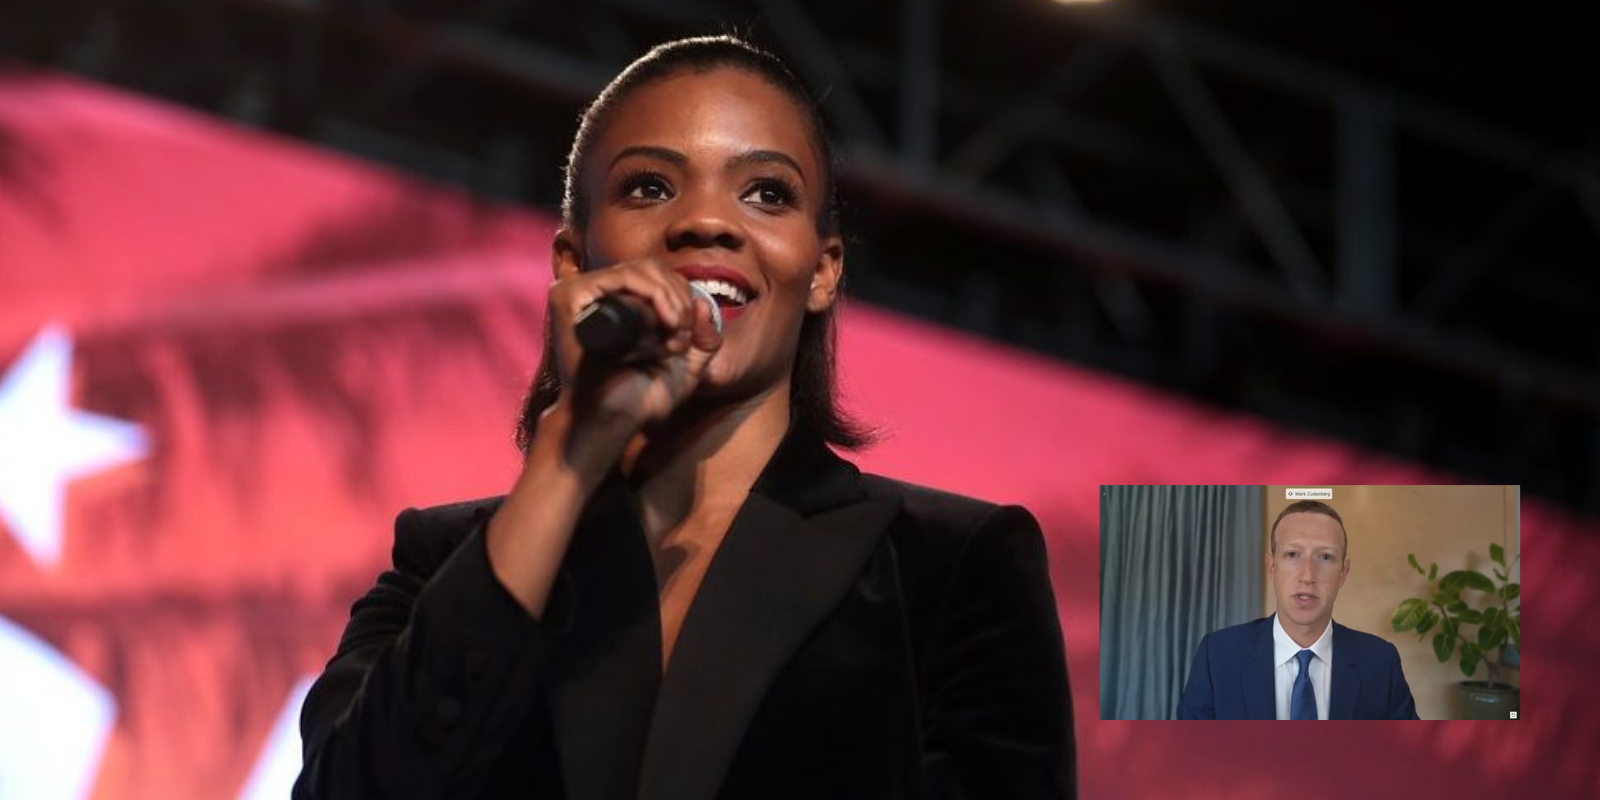 Candace Owens launches defamation lawsuit against Facebook 'fact-checkers'